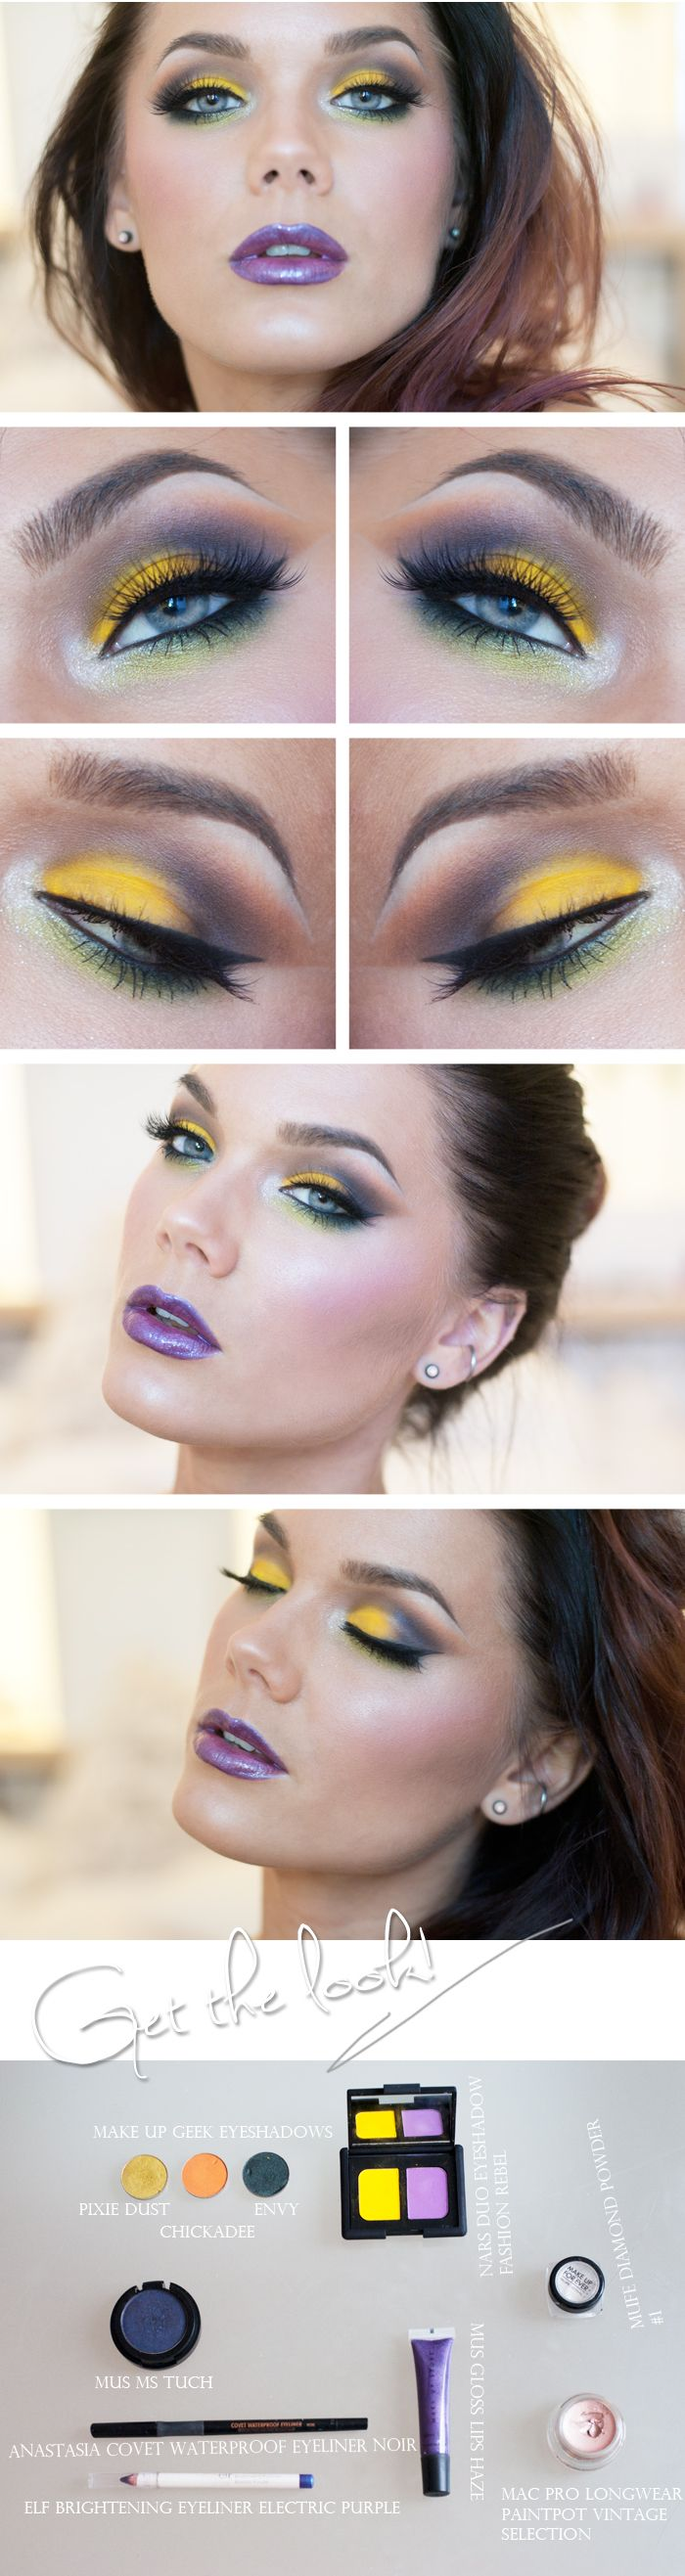 "Today's Look : ""I'll Wrap my hands around your neck so Tight with Love"" -Linda Hallberg (Stunning is the word that comes to mind with this eye look. The brightest of yellows, purple, teal, orange and gold, and that lip color!)07/15/13 Nars Duo Eyeshadow Fashion Rebel, Mug eyeshadows Pixie Dust, Envy, & Chickadee"